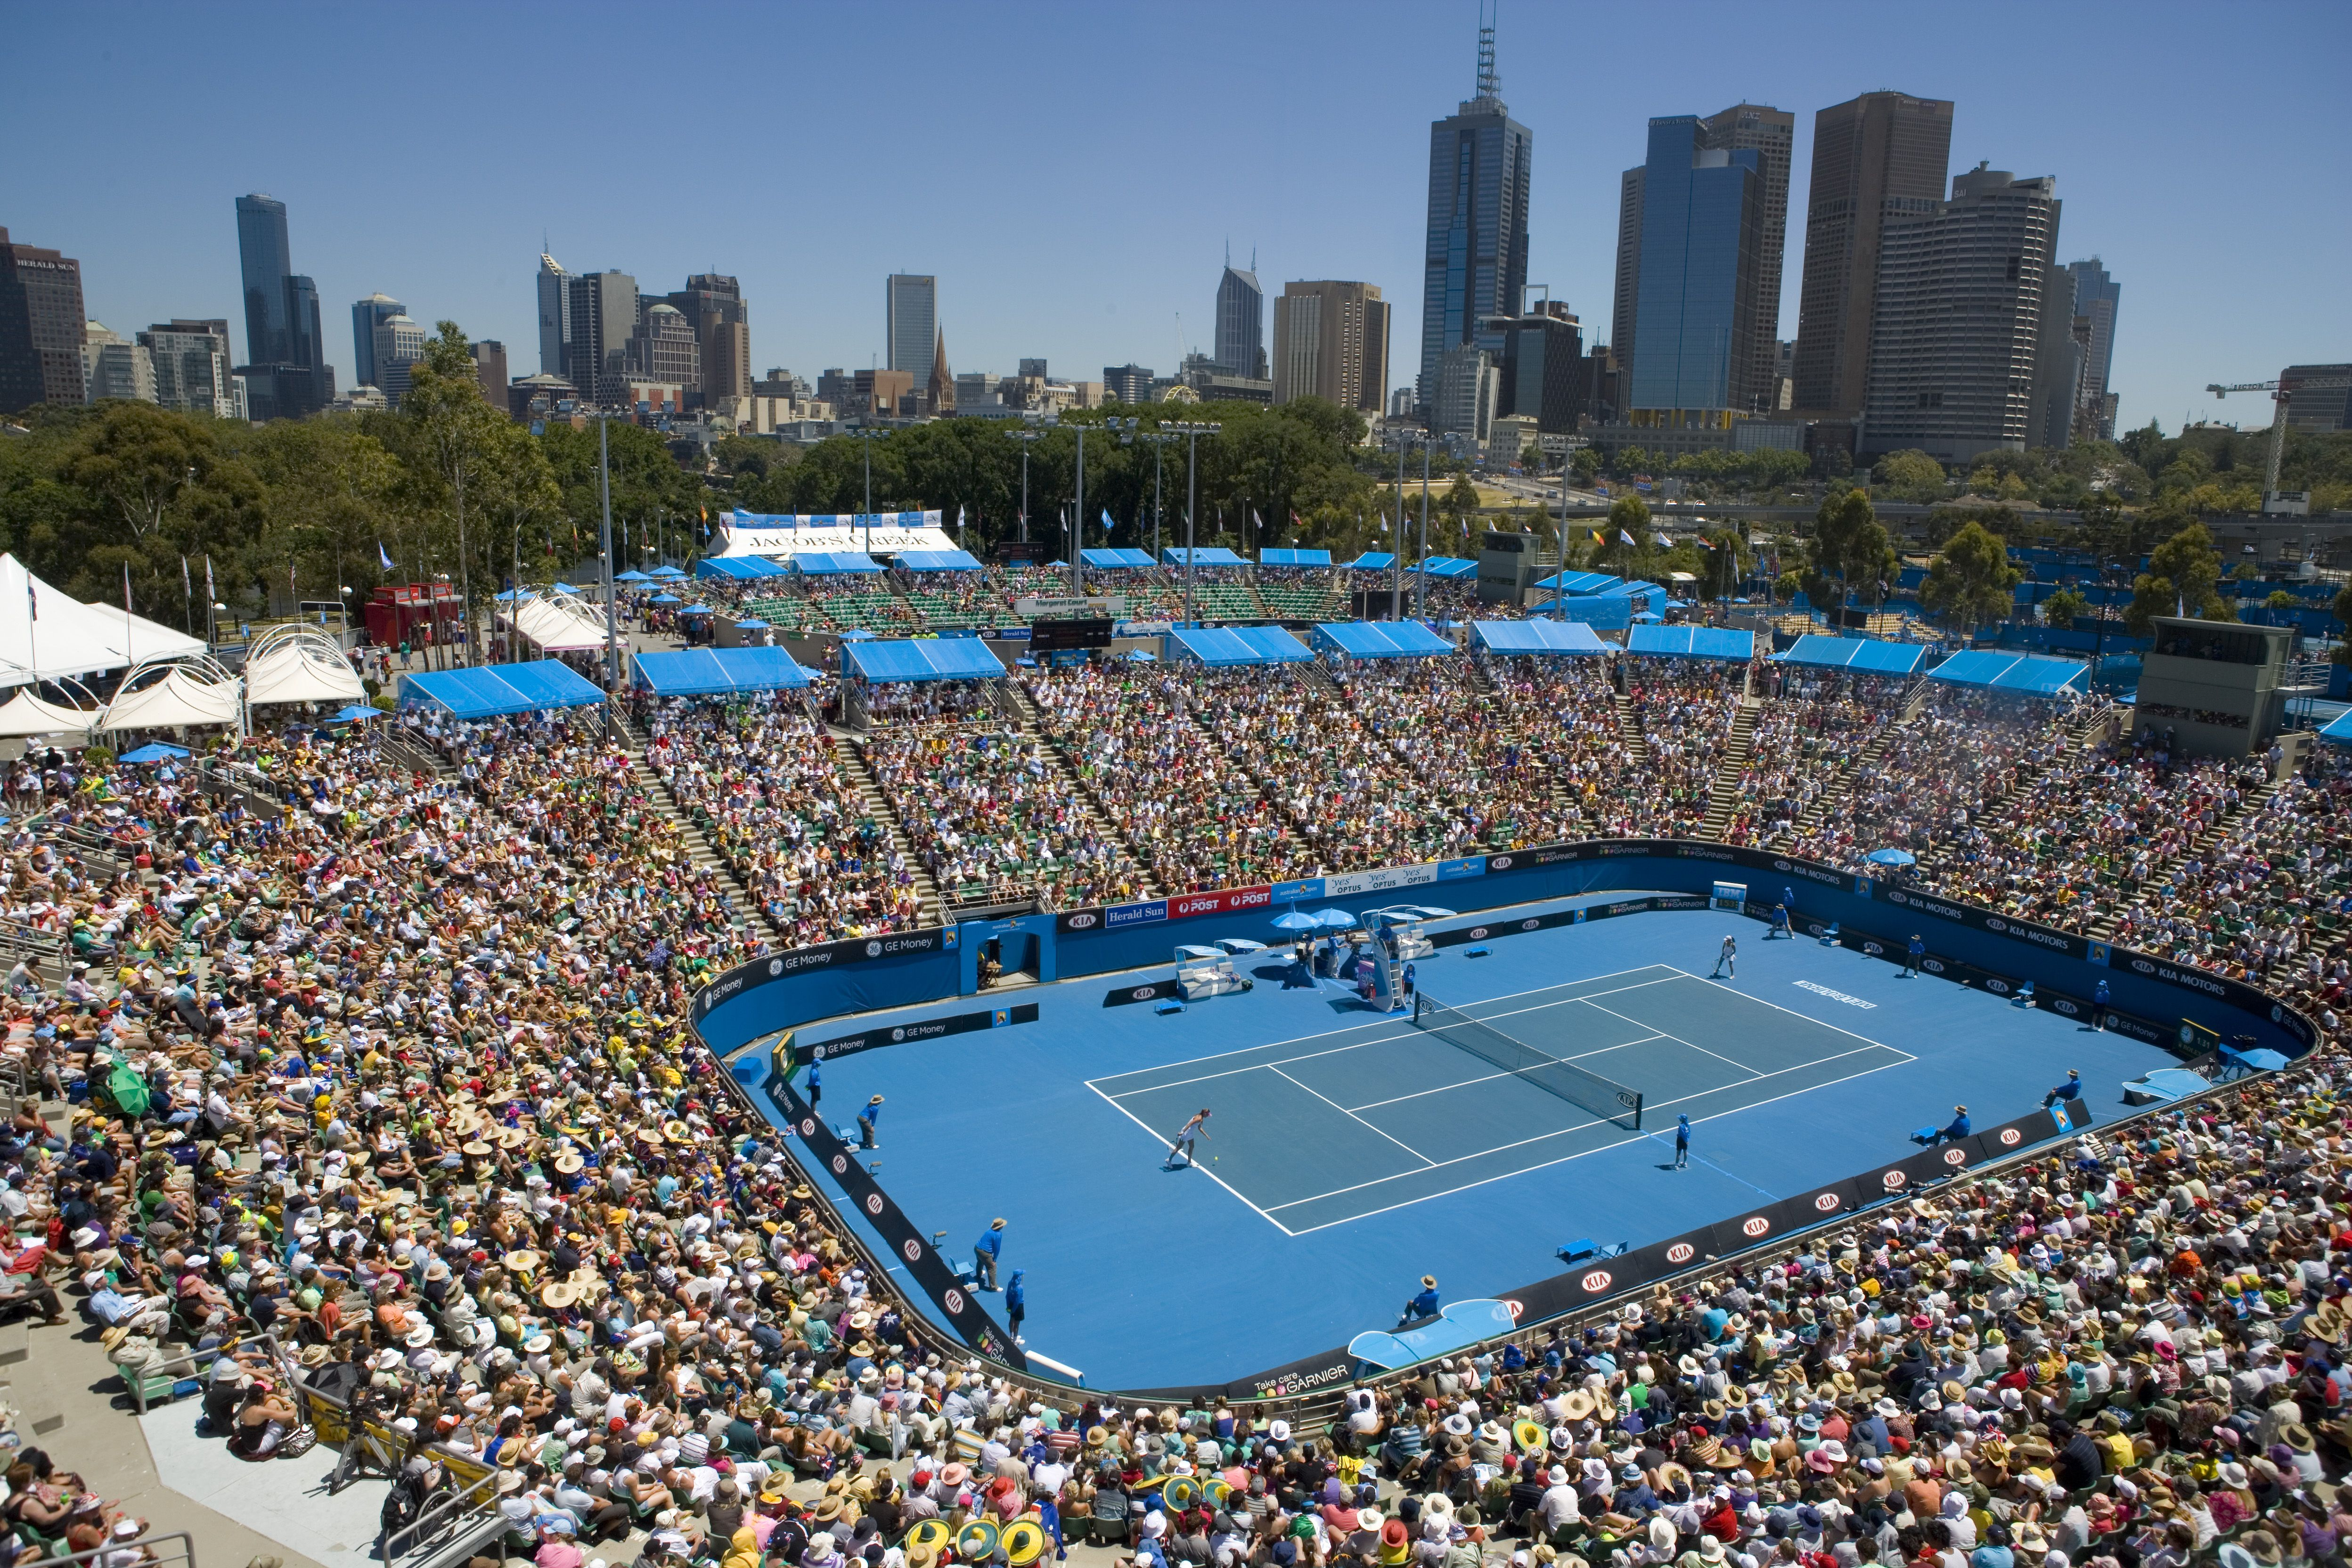 I wanna go in Australia such a long time. The countryside is so beautiful and wild. I love the coral reefs. I wanna swim with the fishes and watch tennis in Melbourne. I think this is destination I'll visit maybe when I have a good career, because it may cost a lot of money.